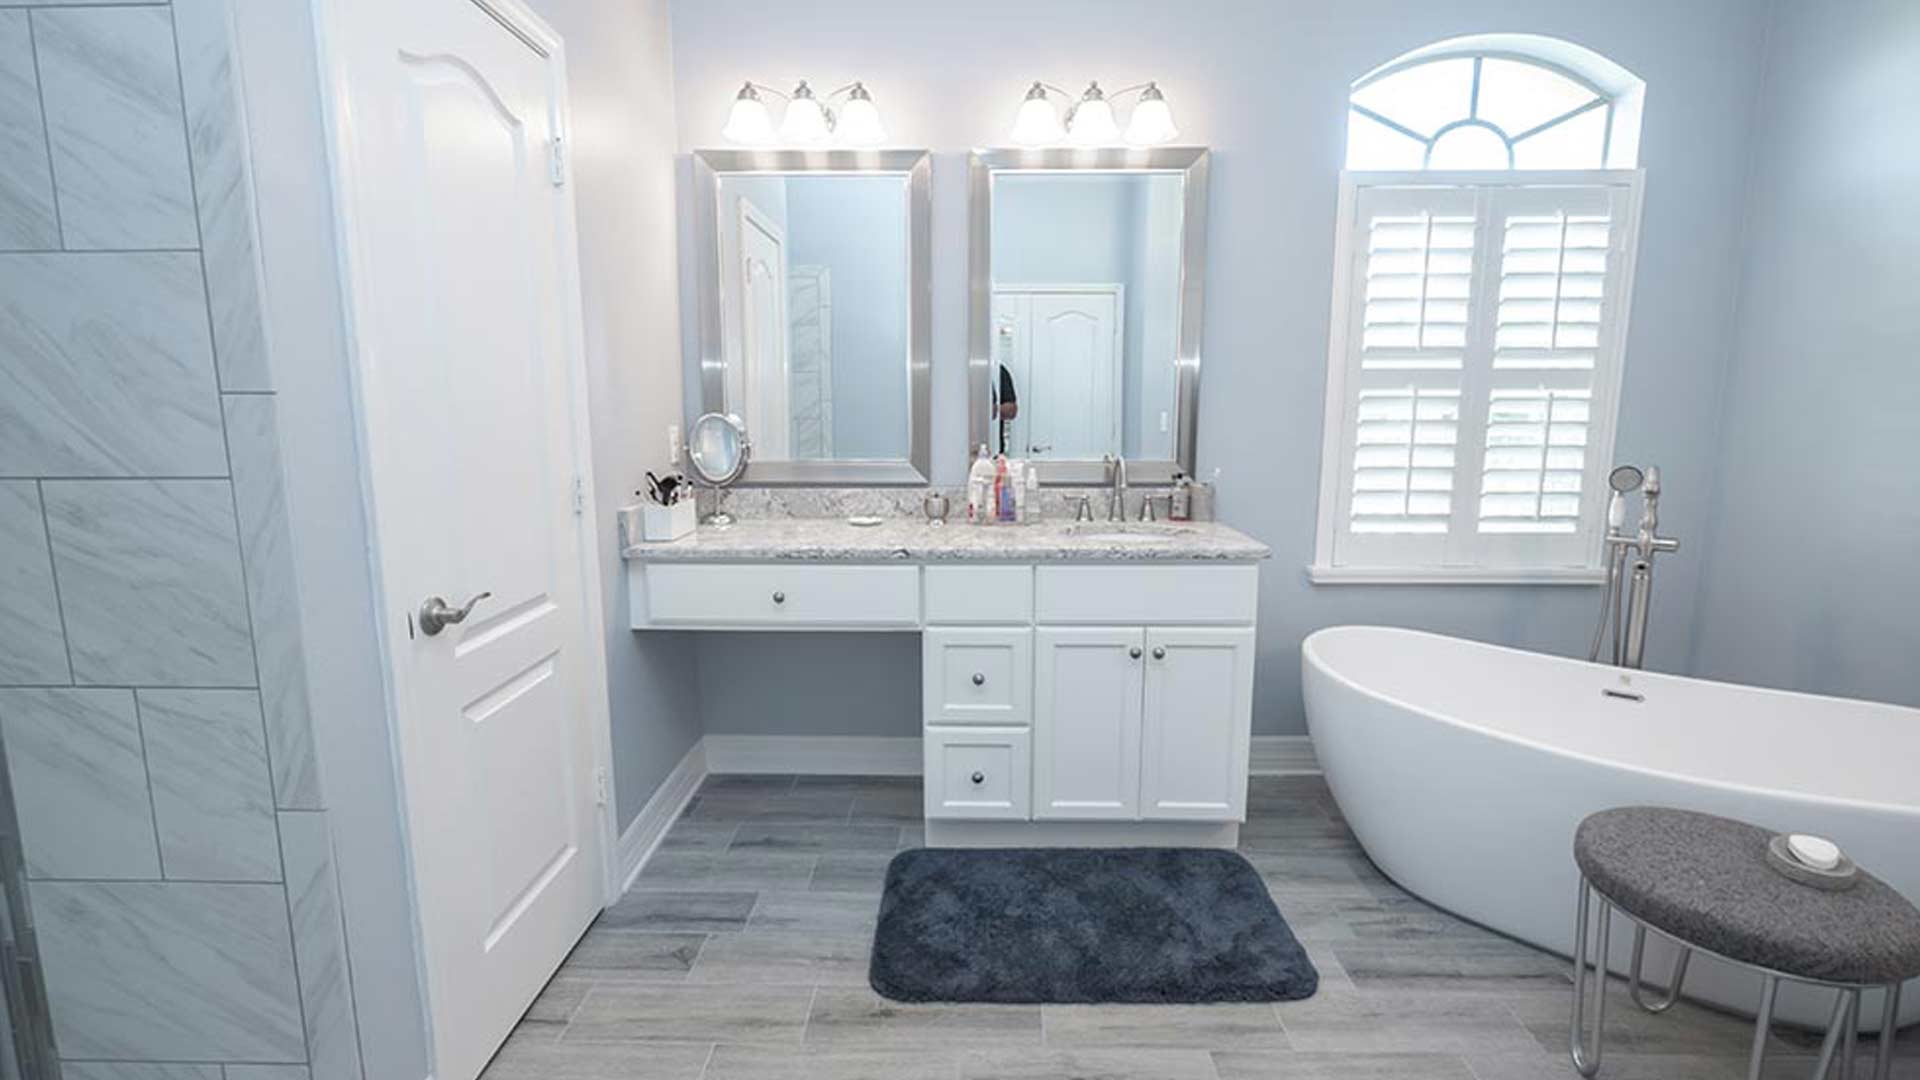 Bathroom remodeling services in central florida true builders rh true builders com for Bathroom remodeling orlando fl